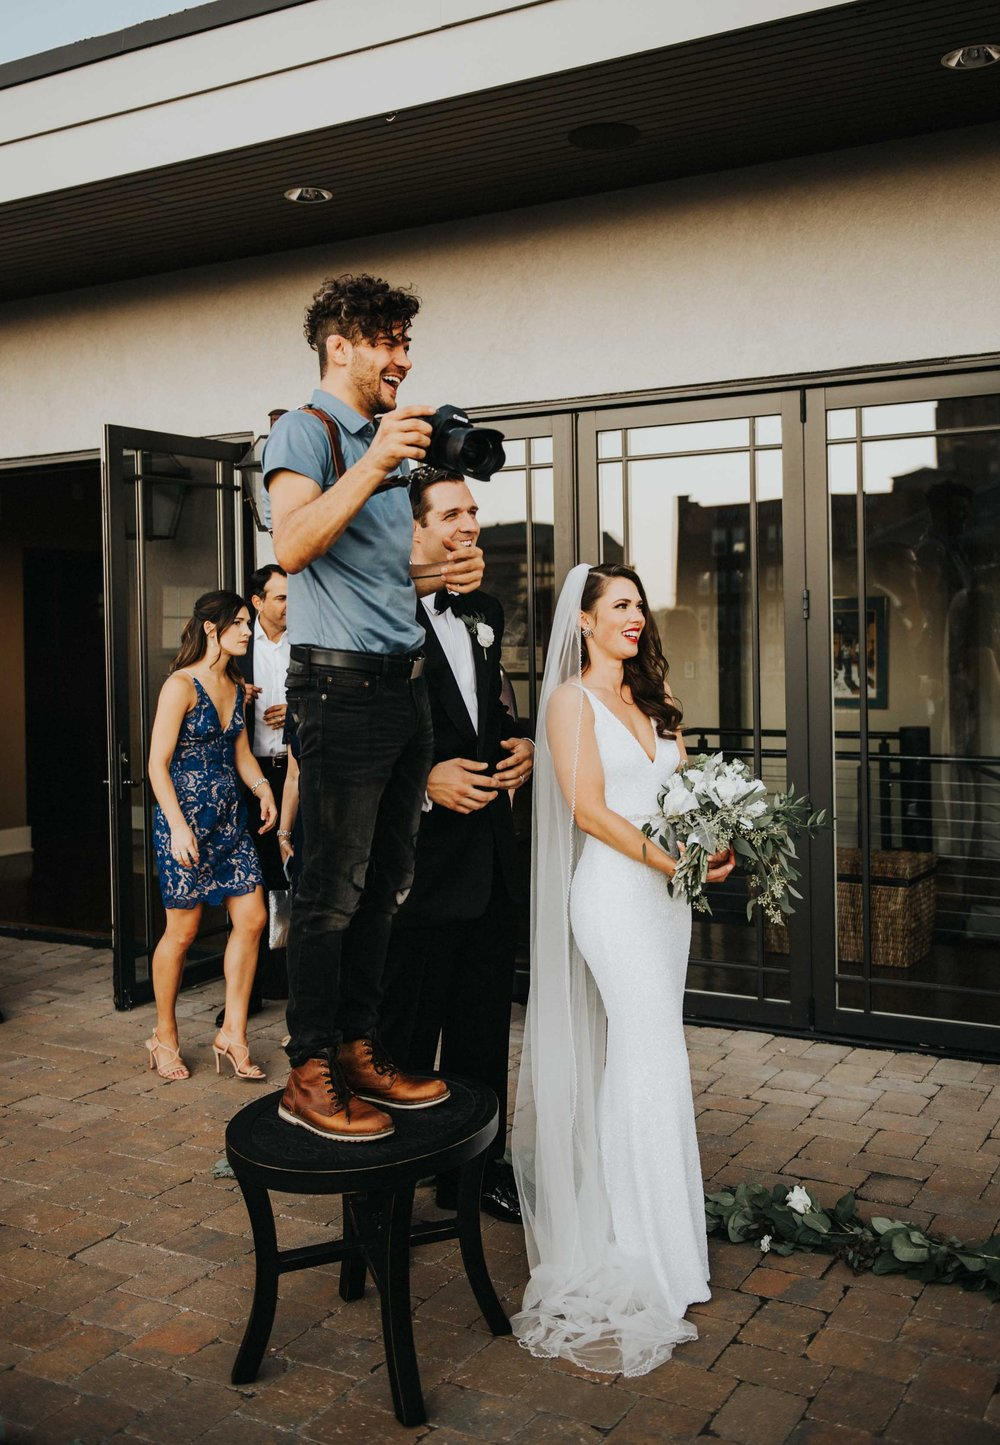 I'm committed to being a Wedding Photographer. -